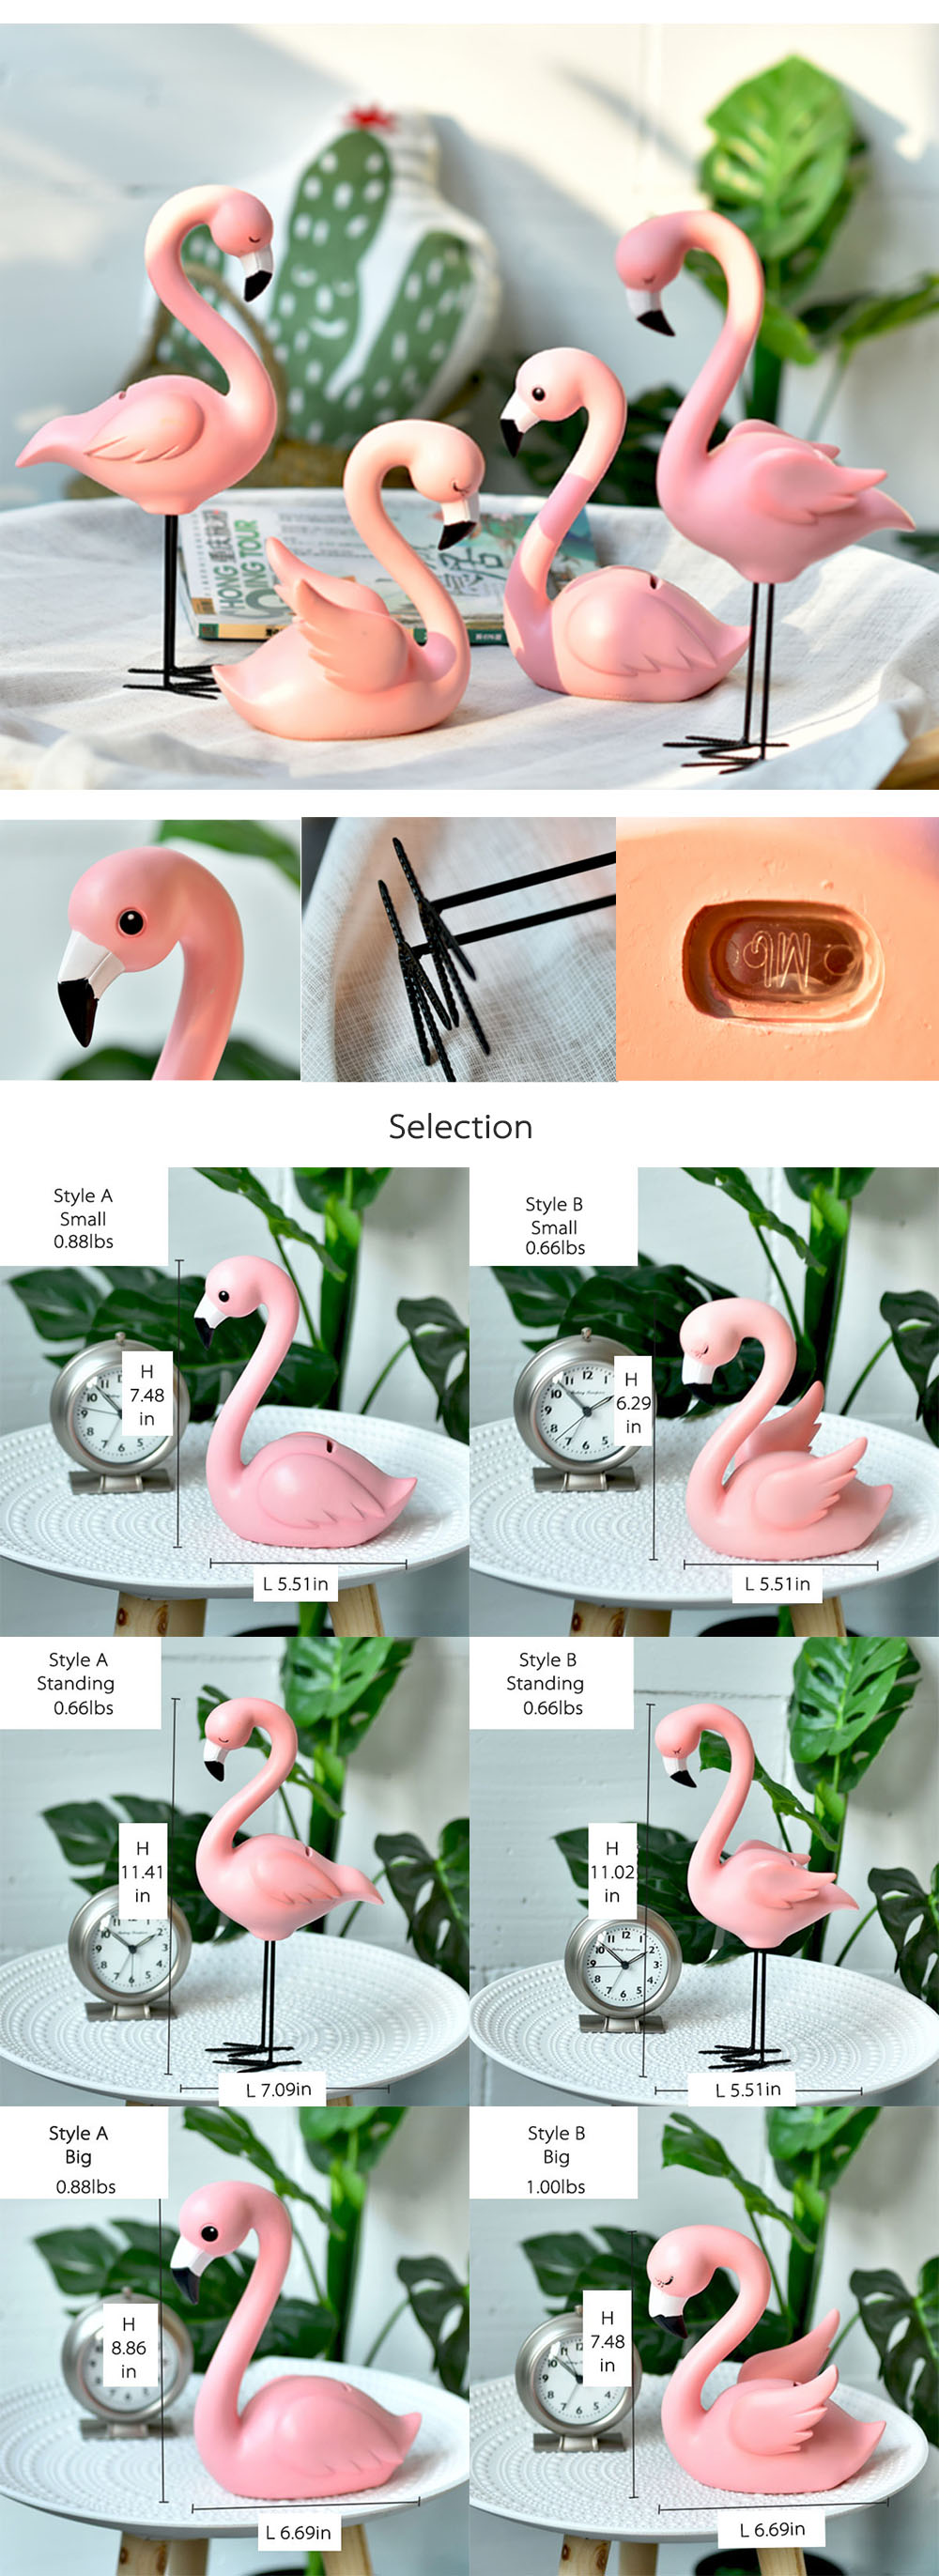 Flamingo Shaped Ceramic Plate Fairytale plates